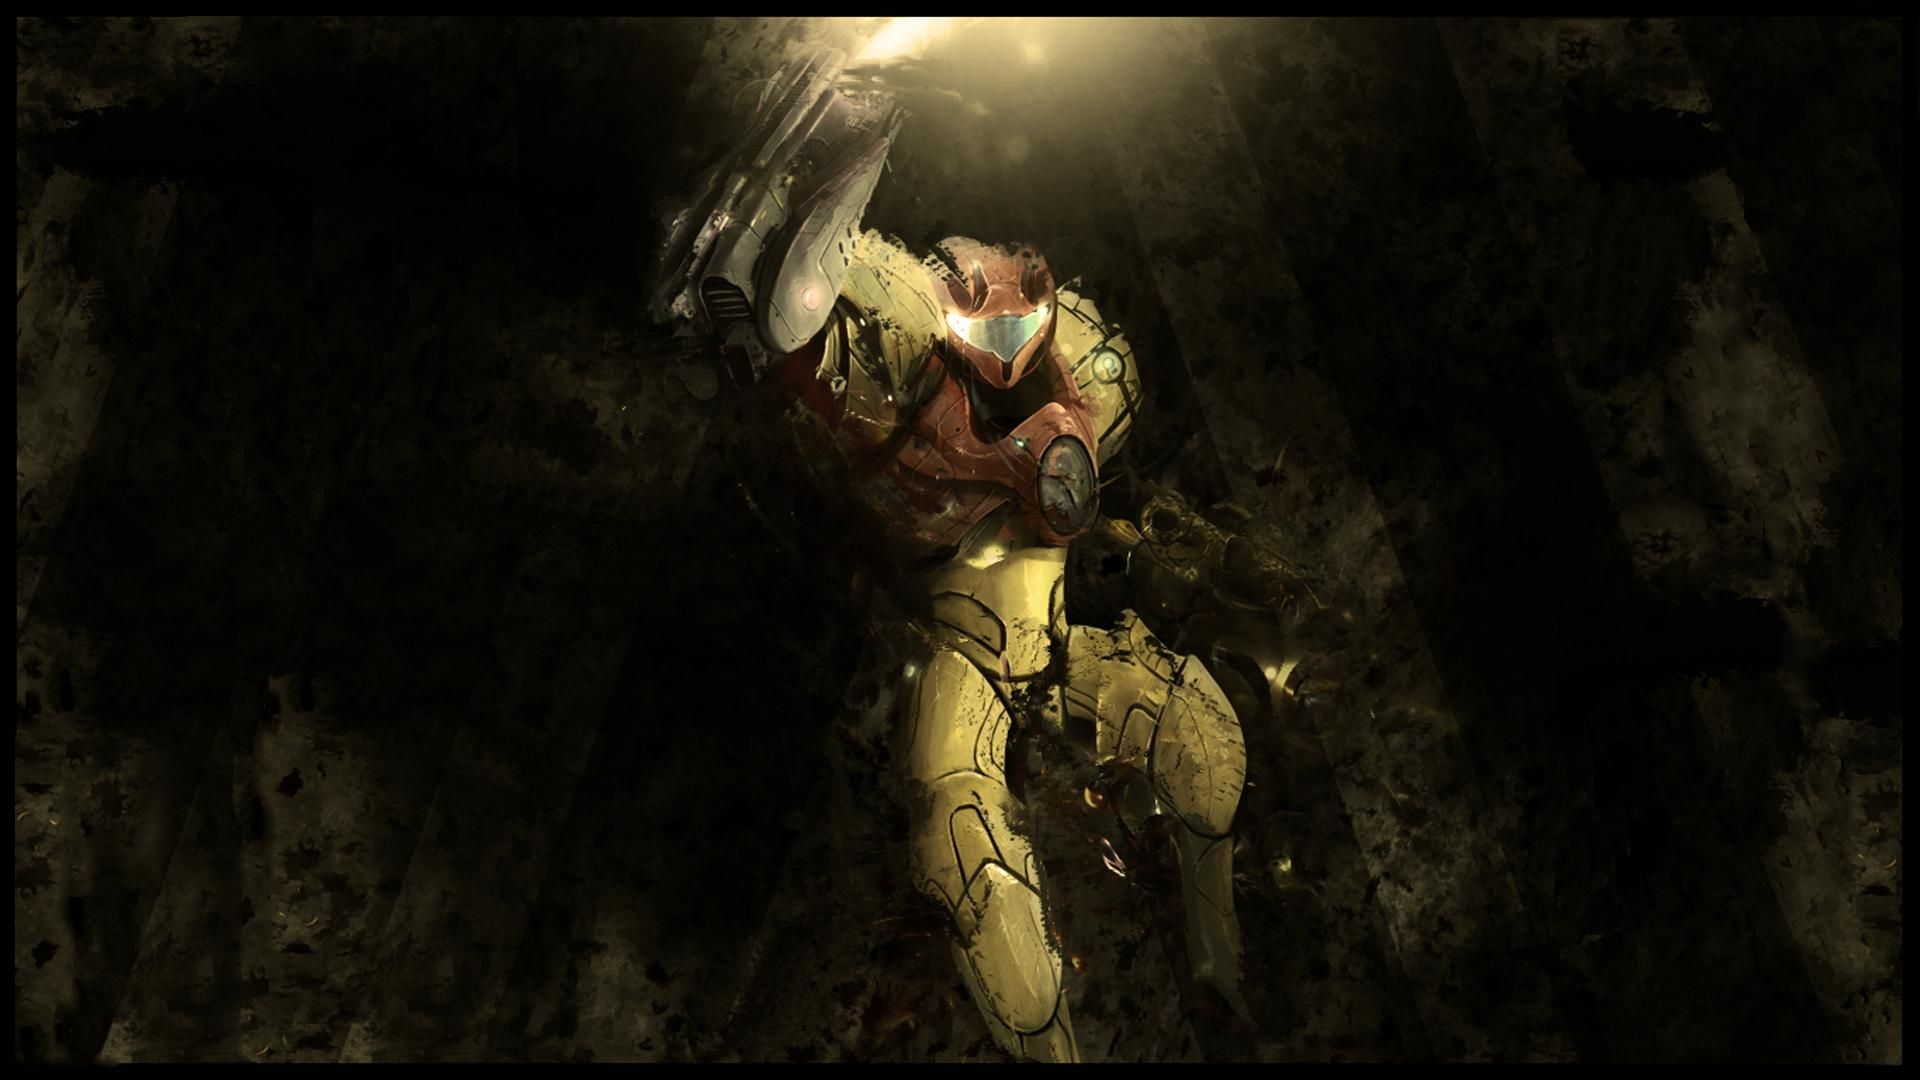 View, download, comment, and rate this 1920x1080 Metroid